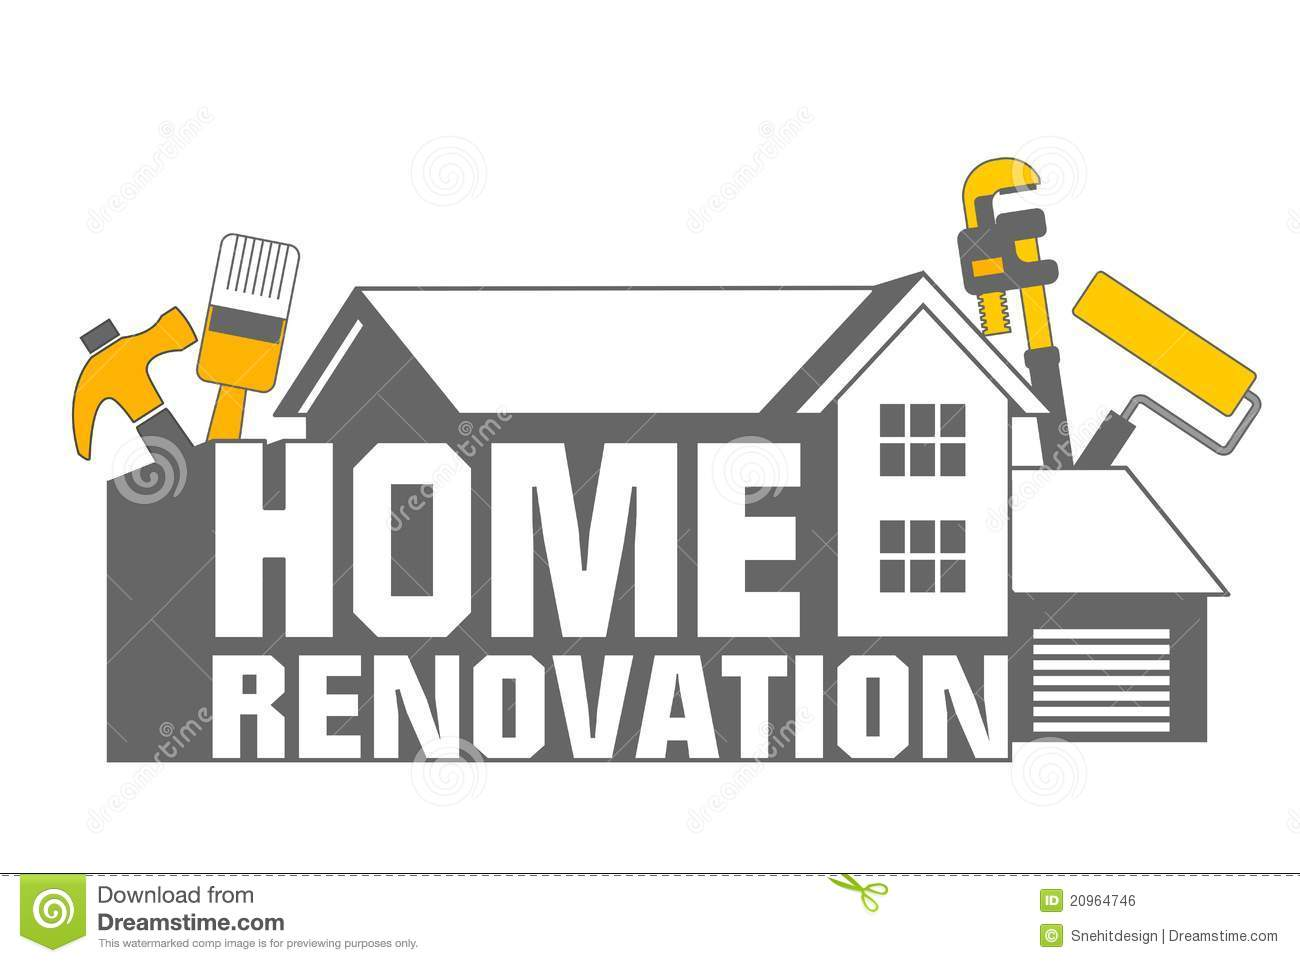 Gomez painting and decorating for House renovation services